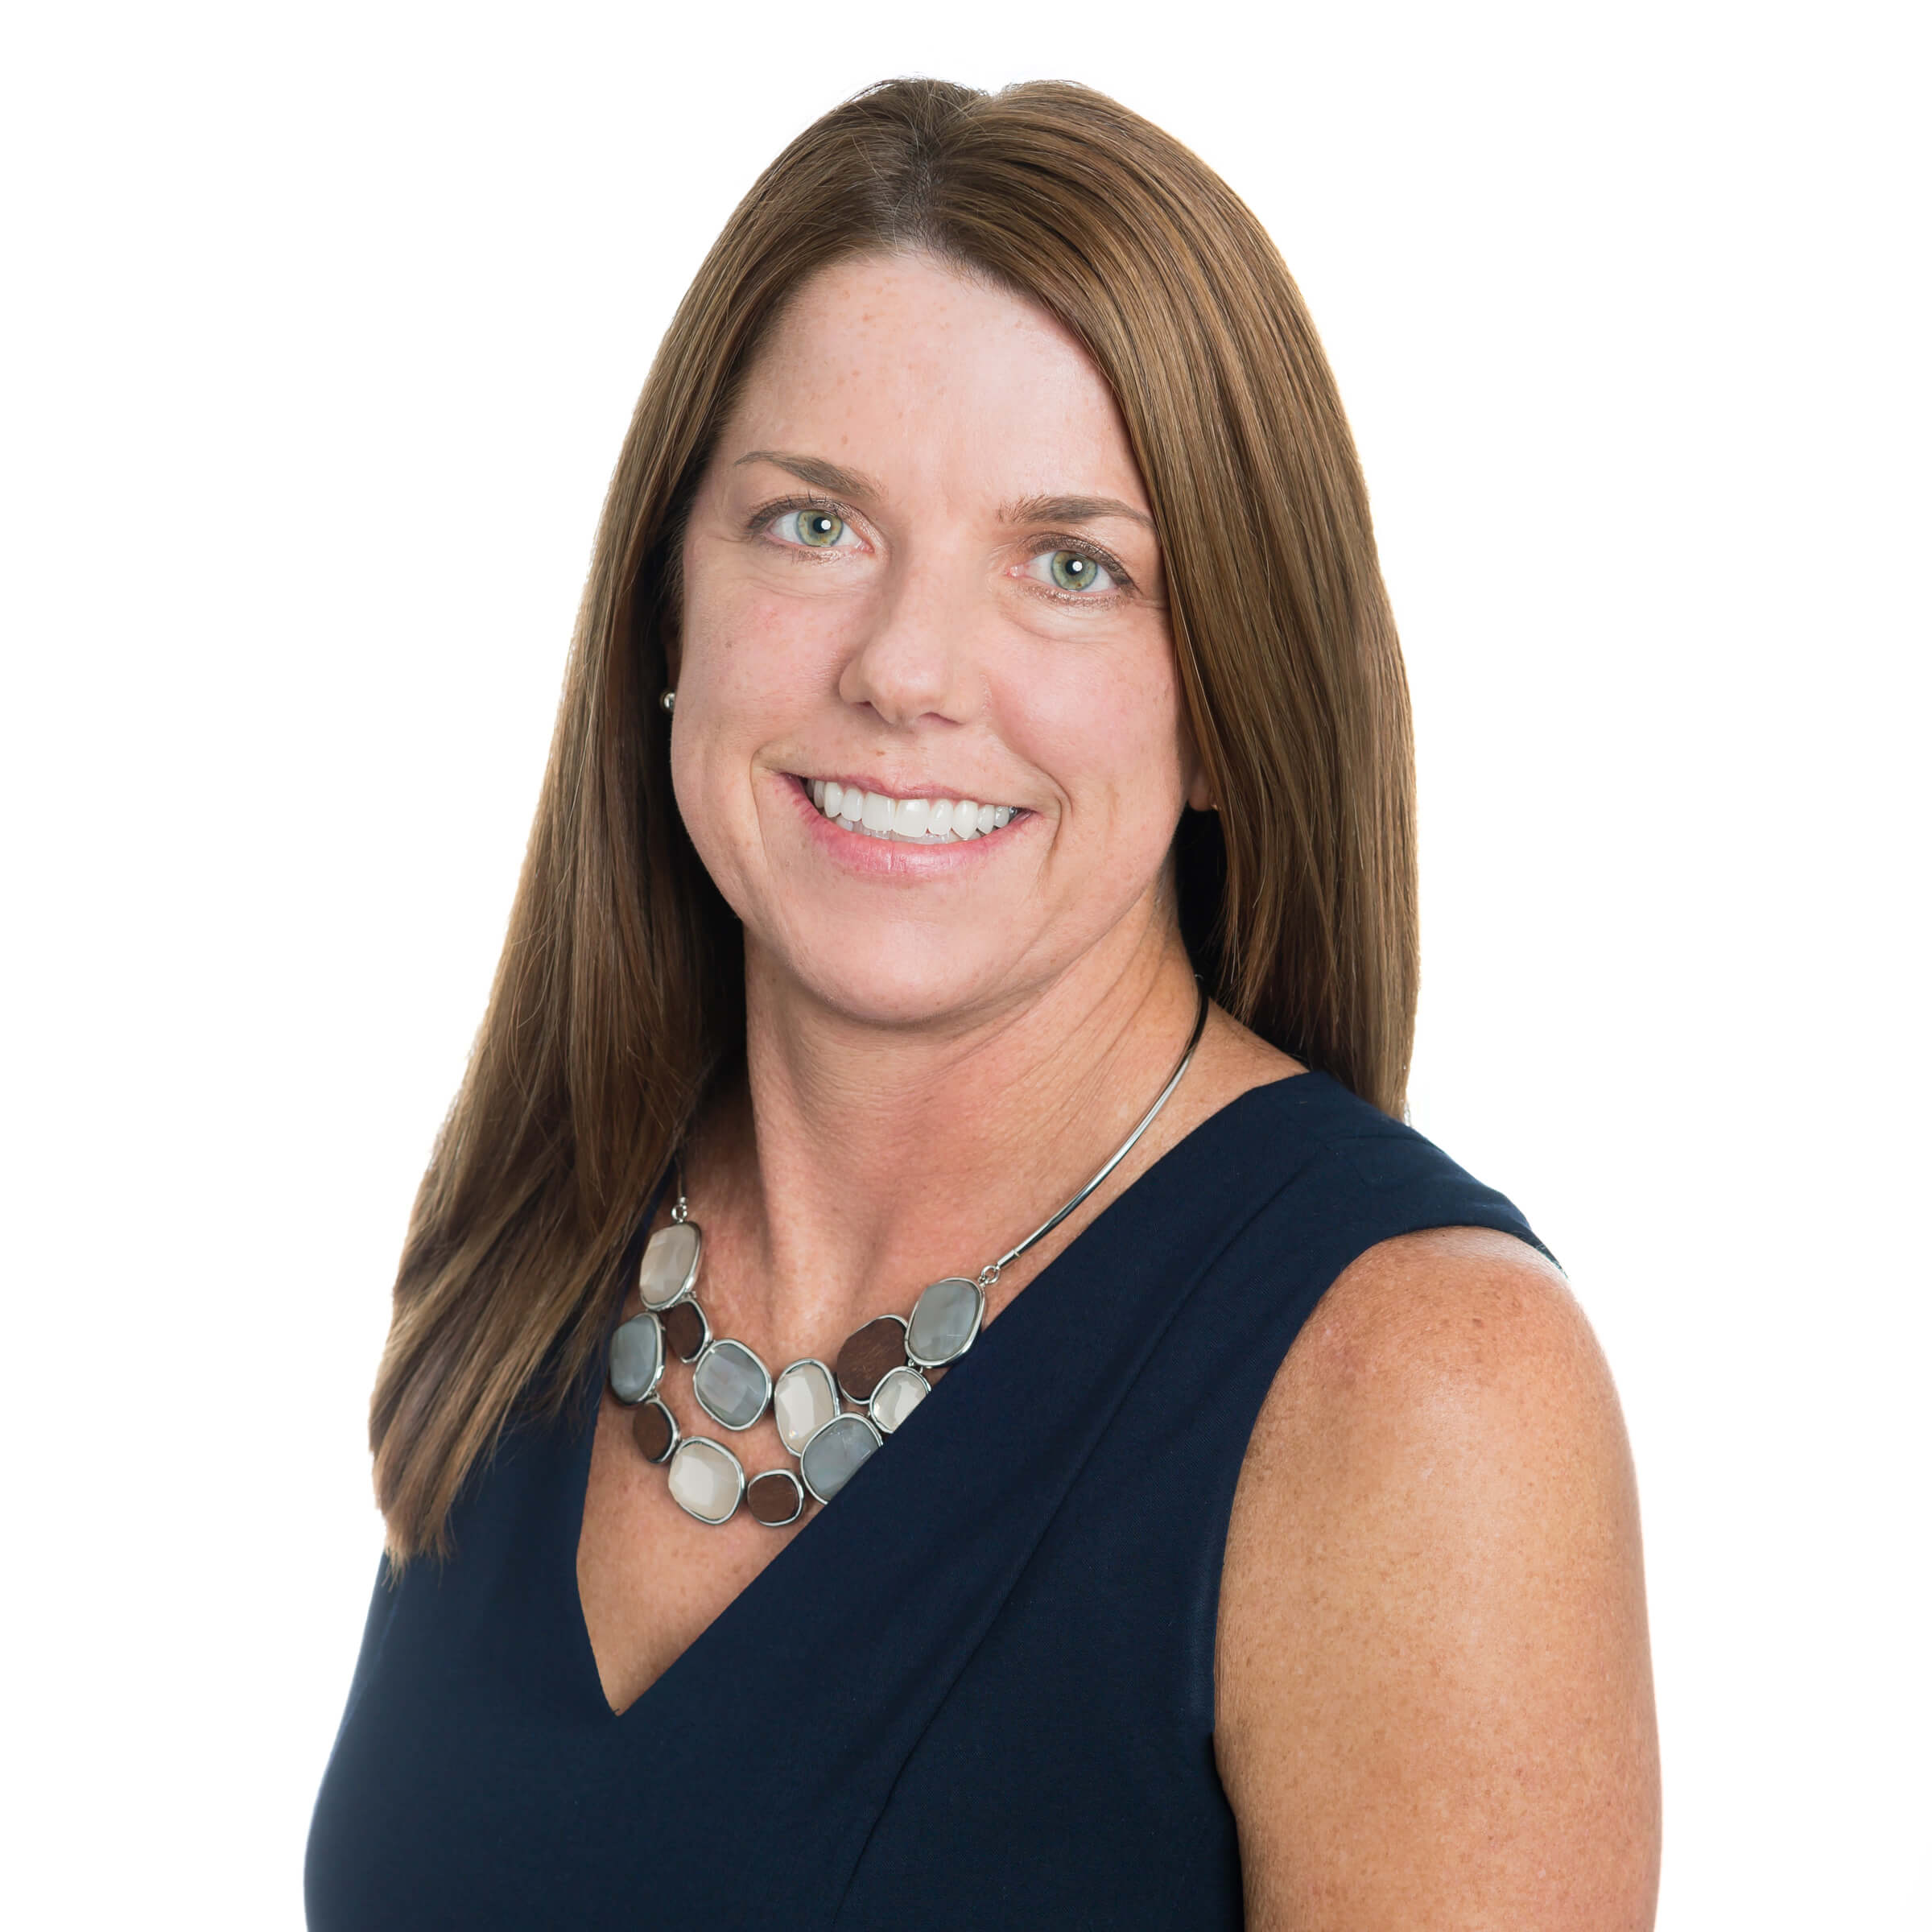 Heather Ulz, CEO of LifePro Financial Services